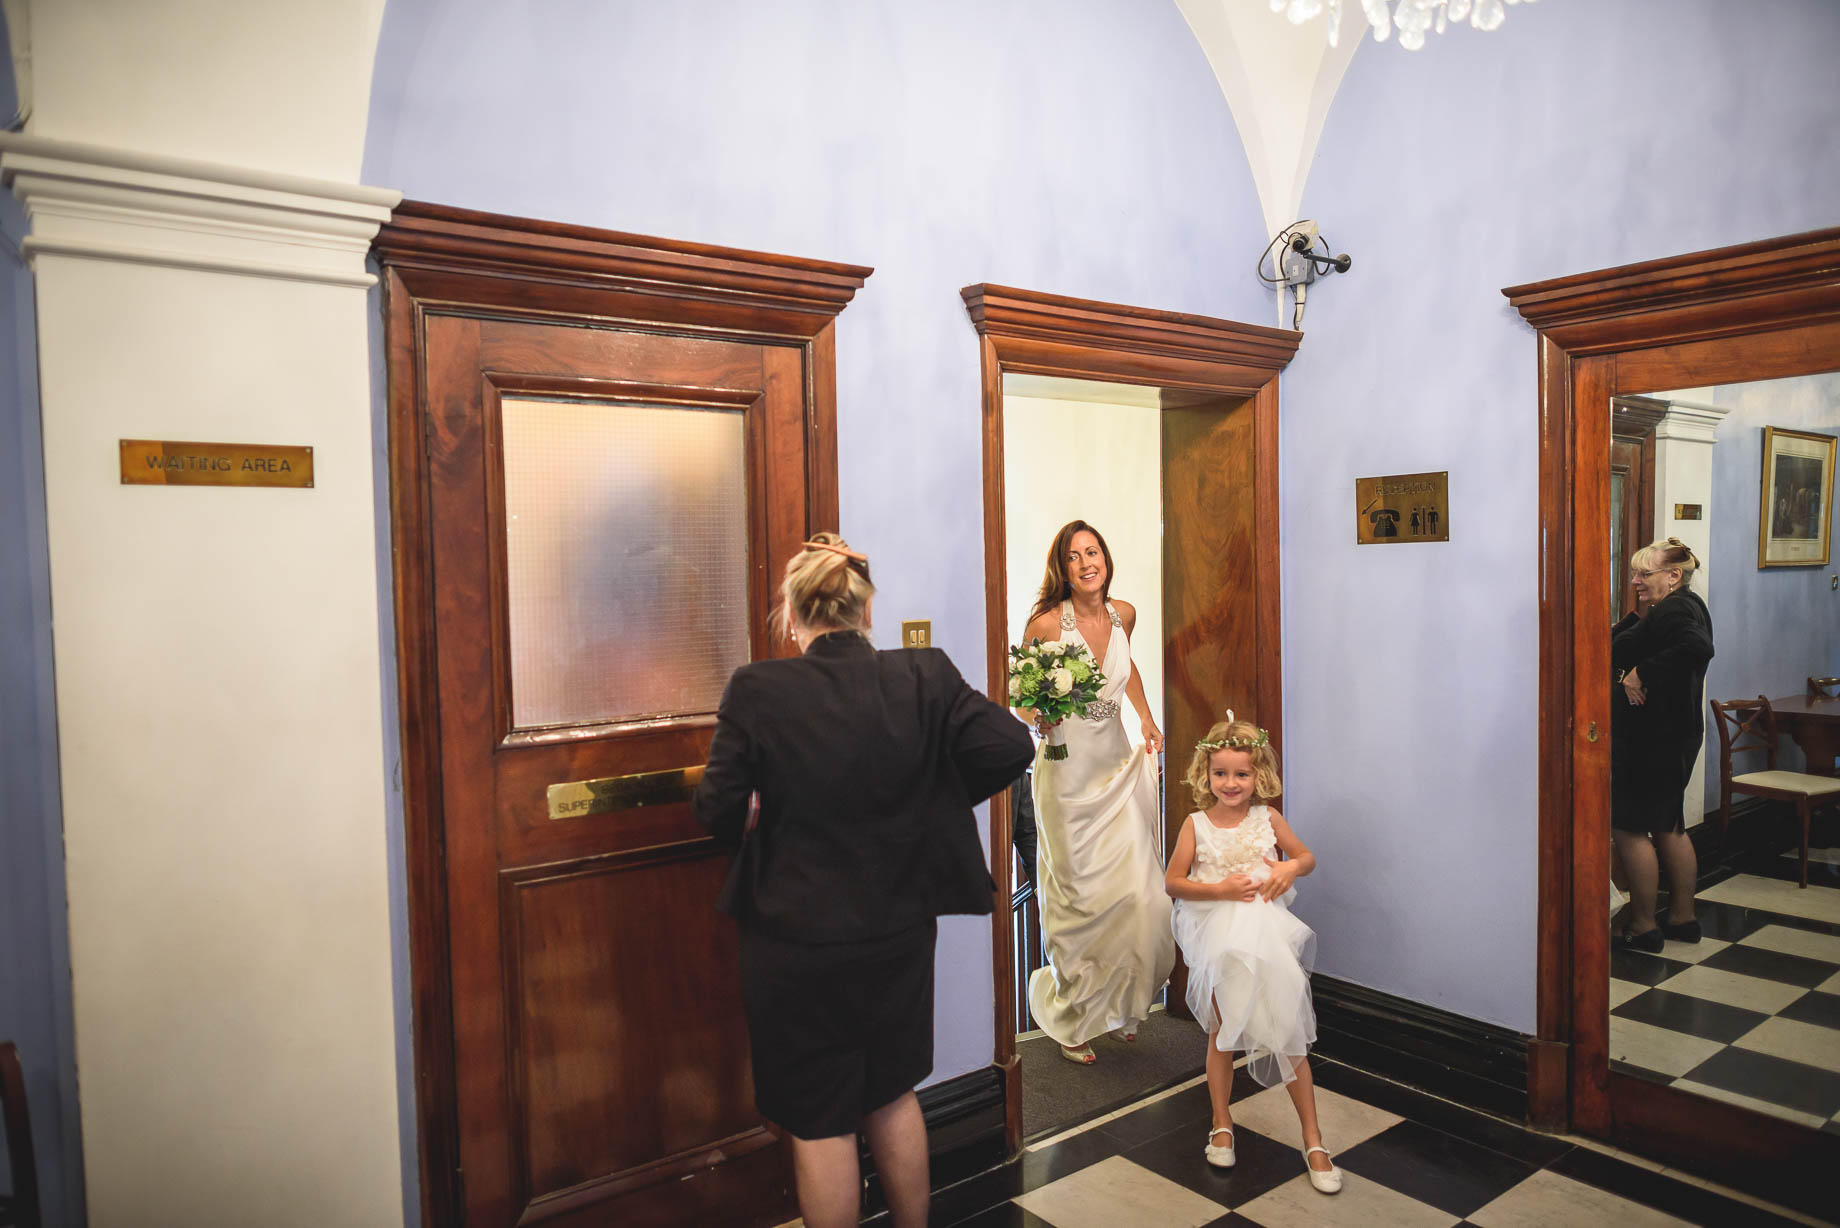 Chelsea and Mayfair wedding photography - Guy Collier - Vicki and Damien (43 of 126)